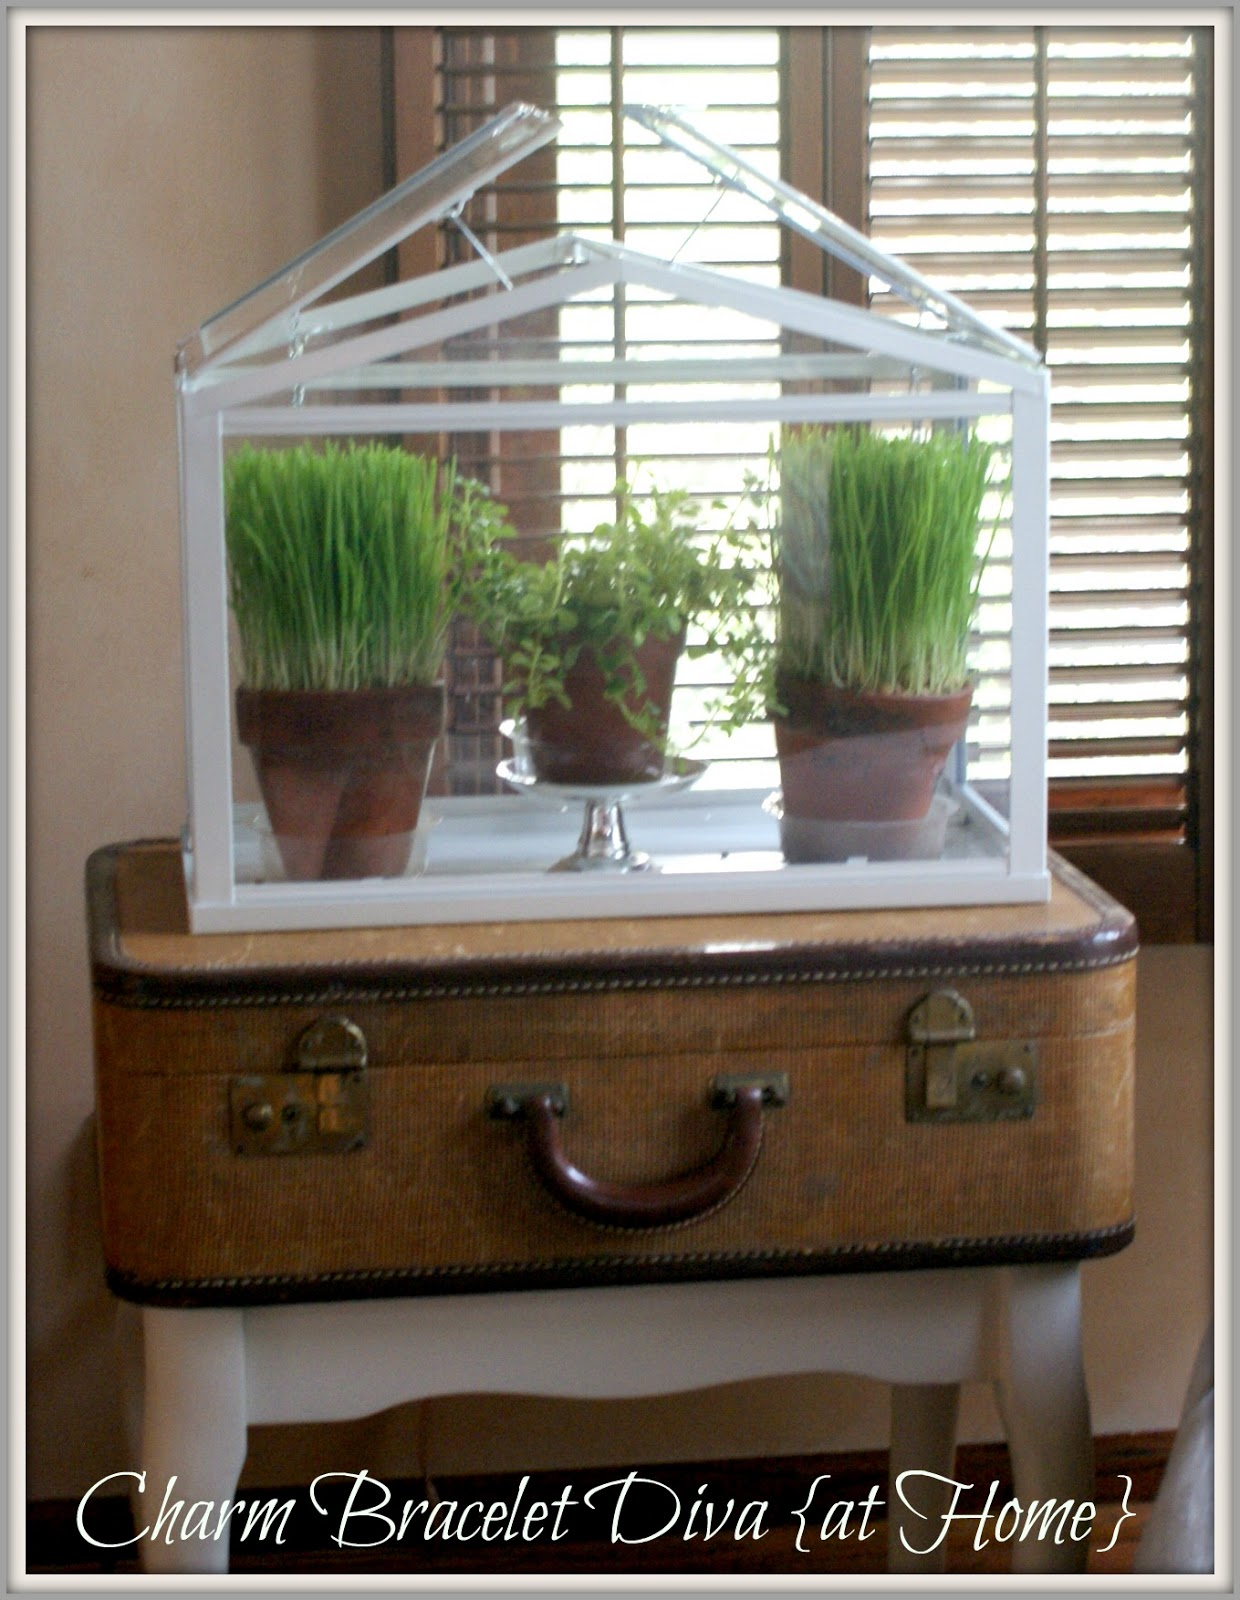 Our hopeful home wheat grass decor 101 for Ornamental grass that looks like wheat